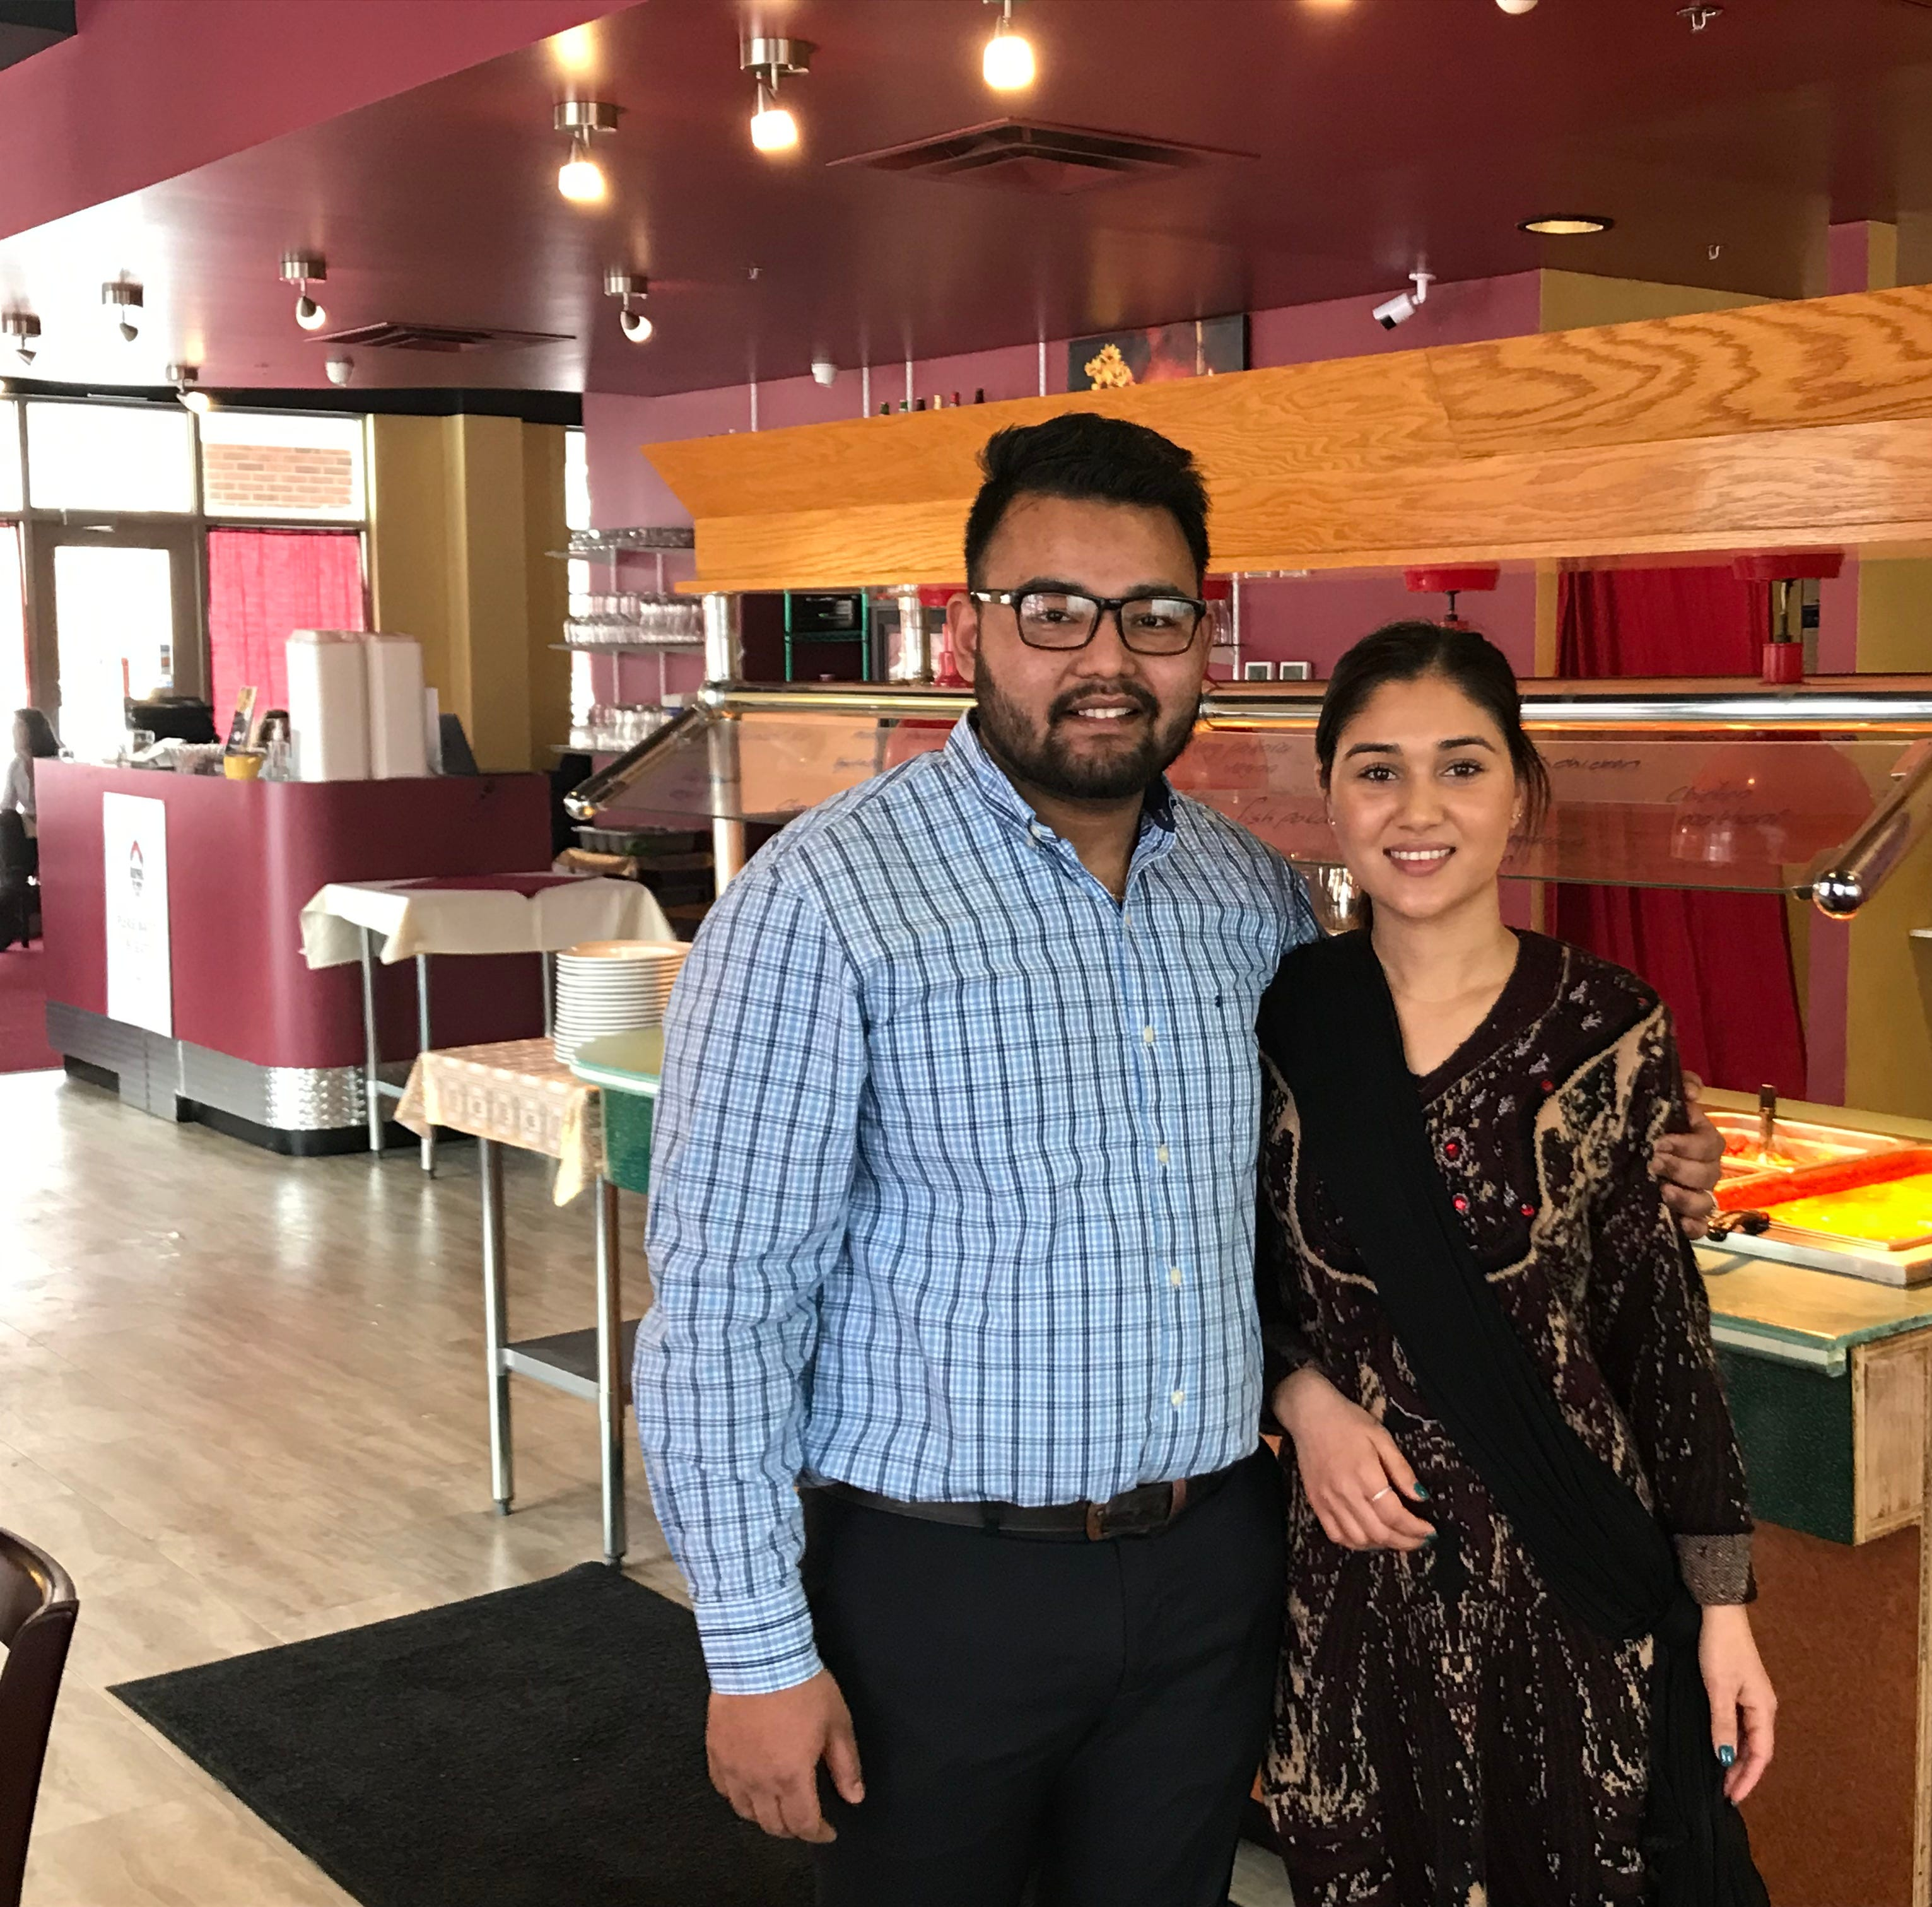 Young owners serve up flavors of India and Nepal in Henrietta